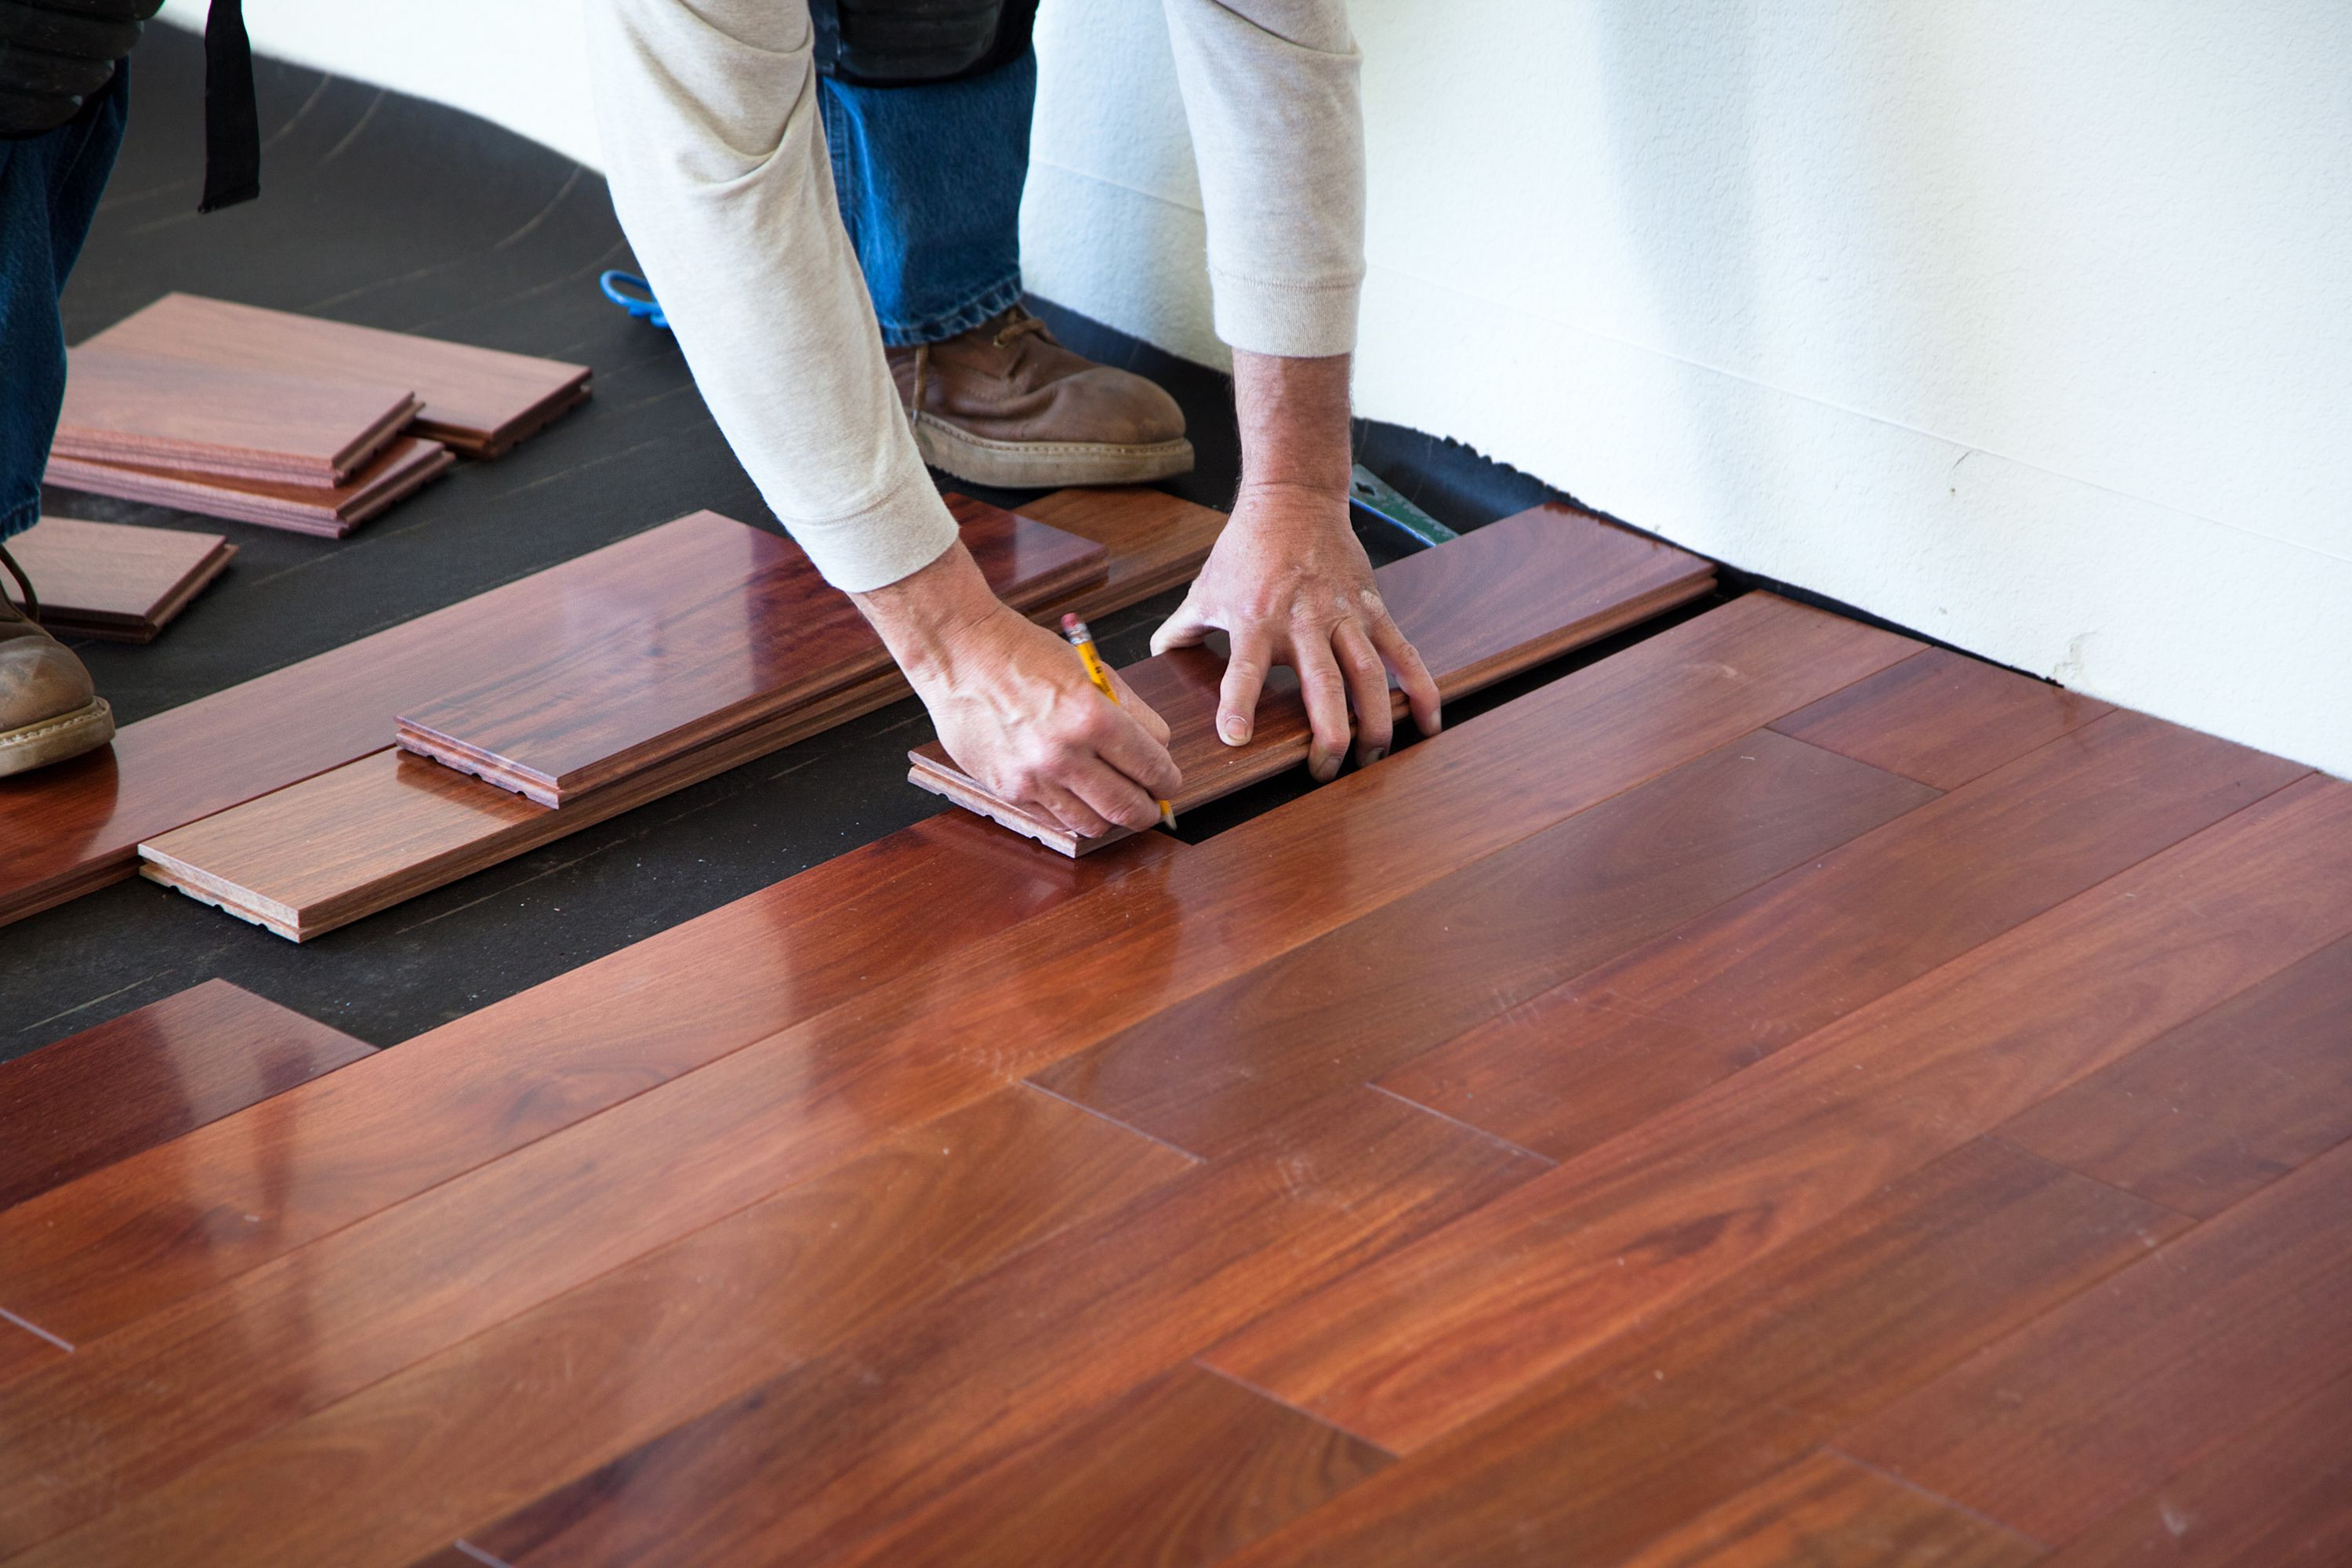 Installing Hardwood Floors On Concrete Subfloor Of the Subfloor is the Foundation Of A Good Floor with Regard to Installing Hardwood Floor 170040982 582b748c5f9b58d5b17d0c58